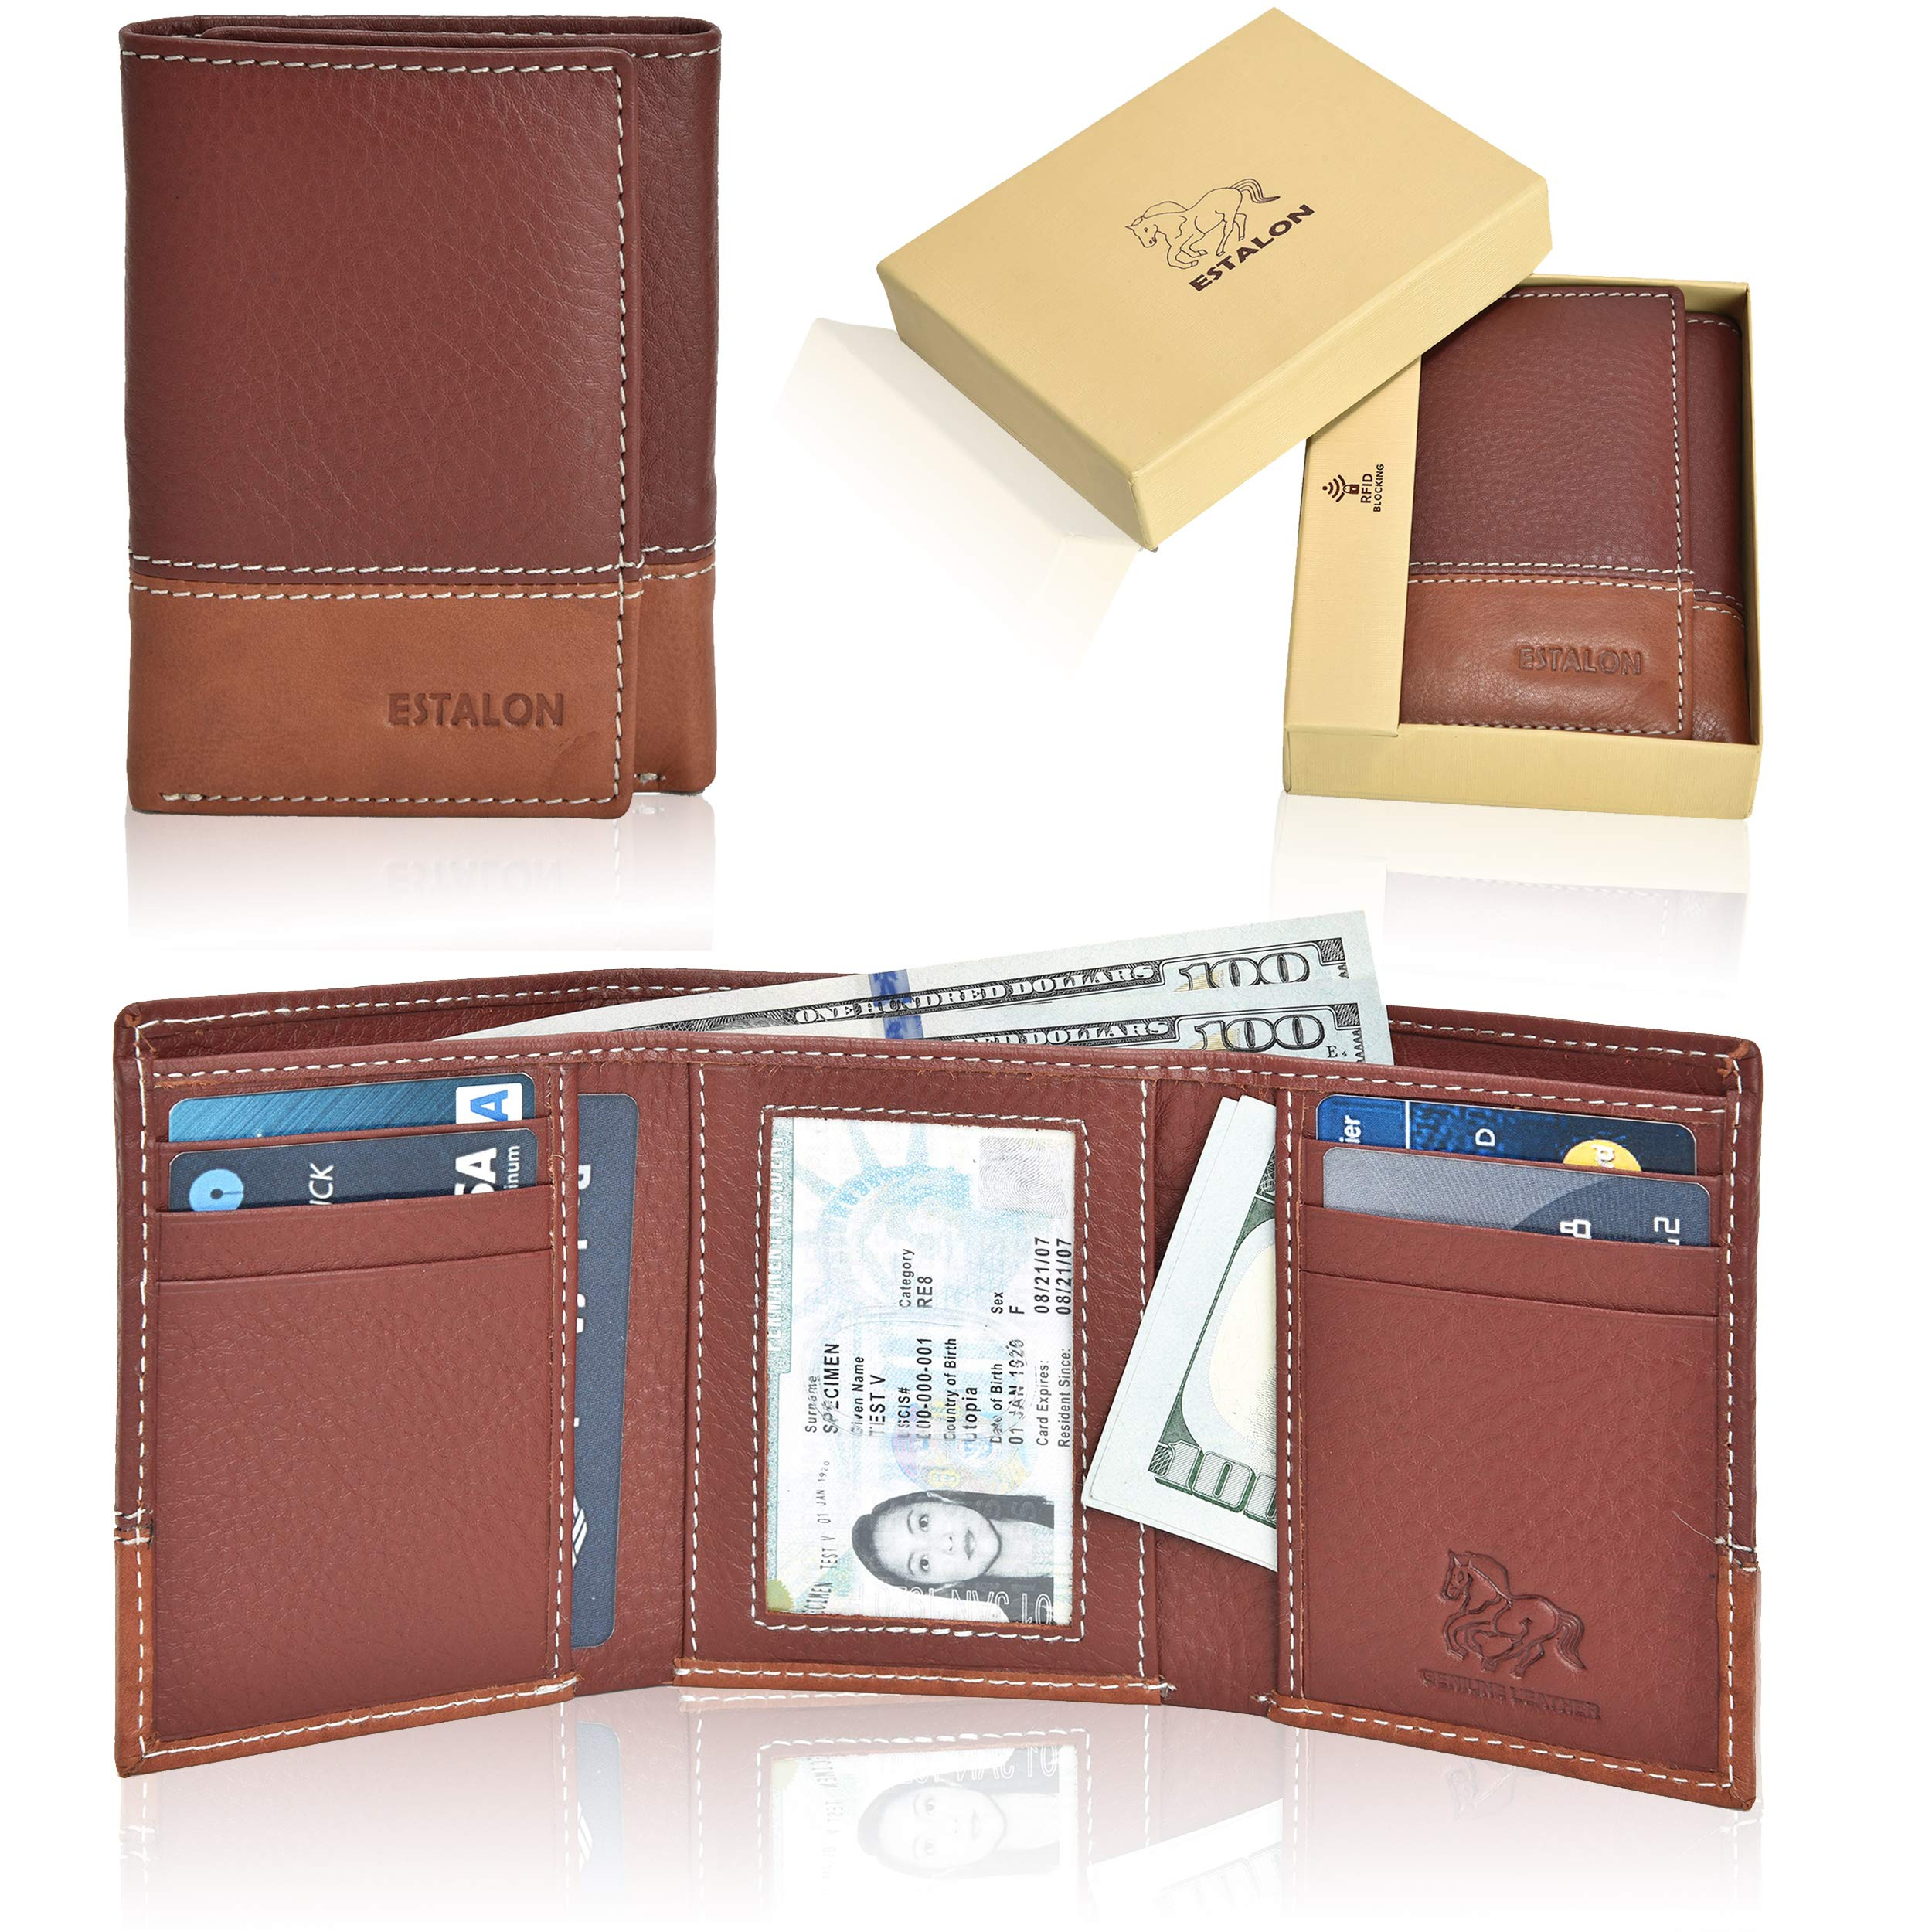 Estalon RFID Leather Trifold Wallets for Men - Handmade Slim Mens Wallet 6 Credit Card ID Window and Gift Box Secure by